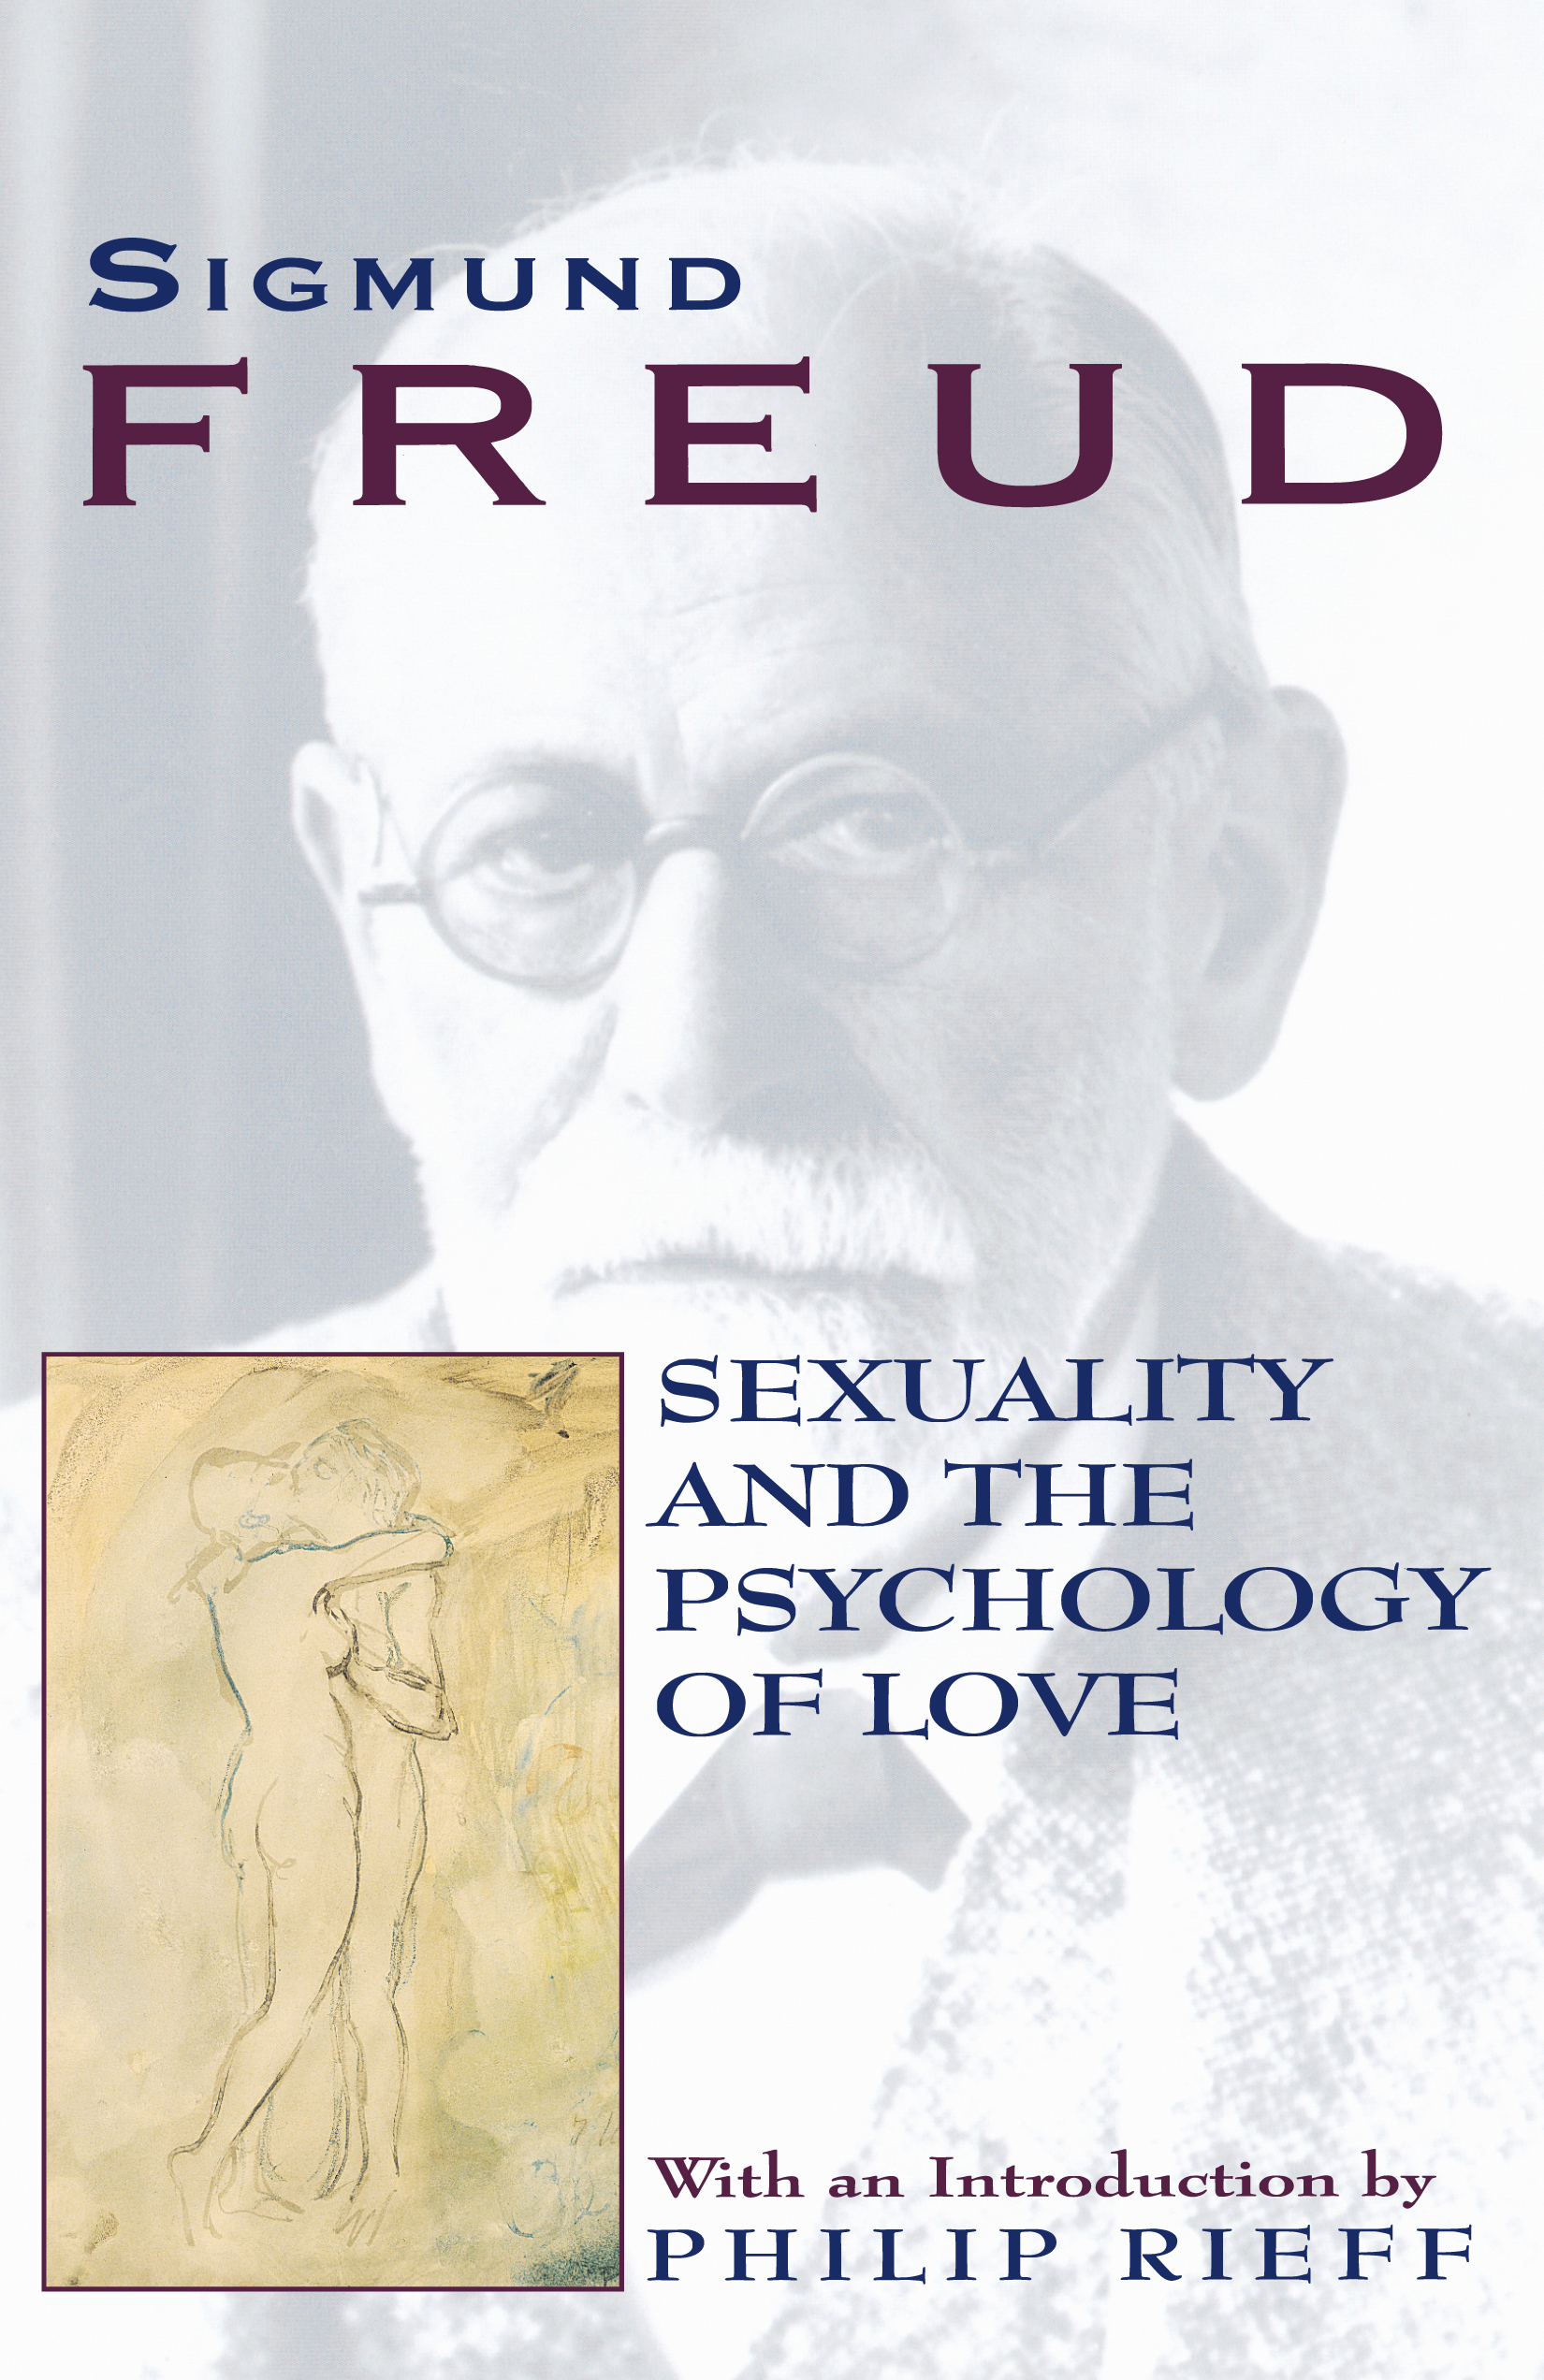 sexuality and the psychology of love book by sigmund freud cvr9780684838243 9780684838243 hr